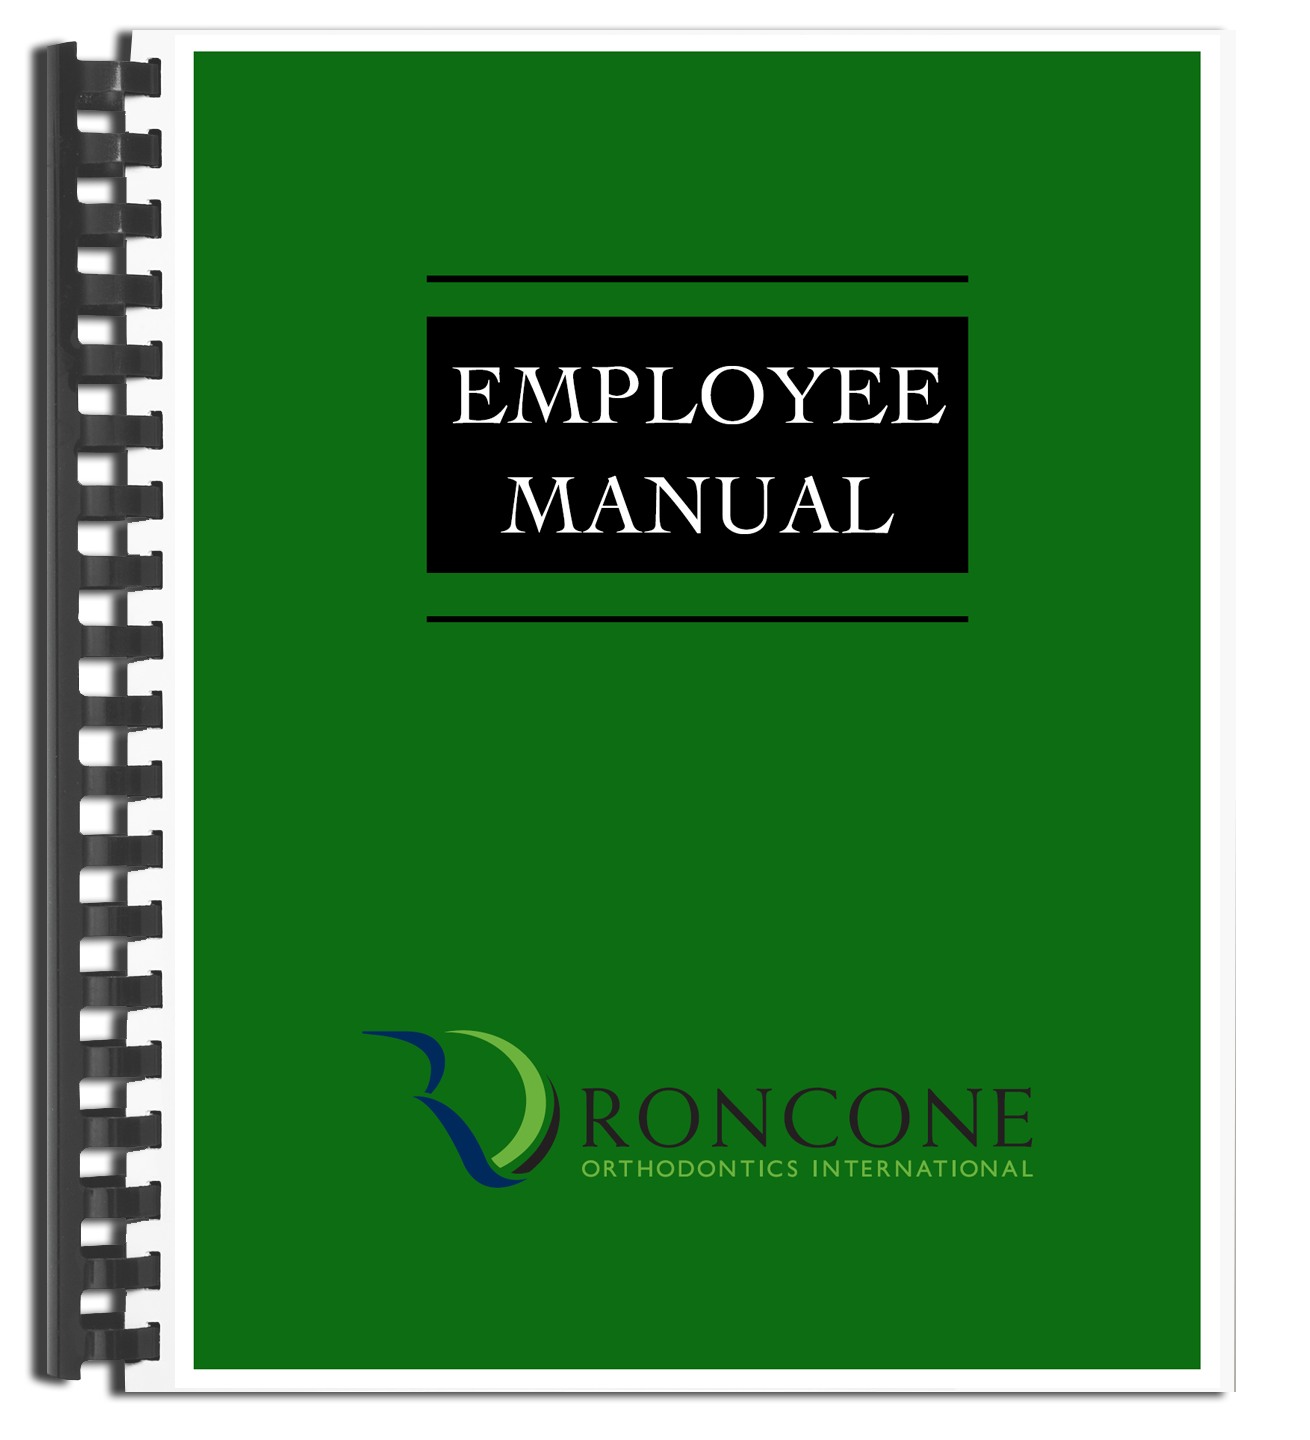 Attractive Employee Manual